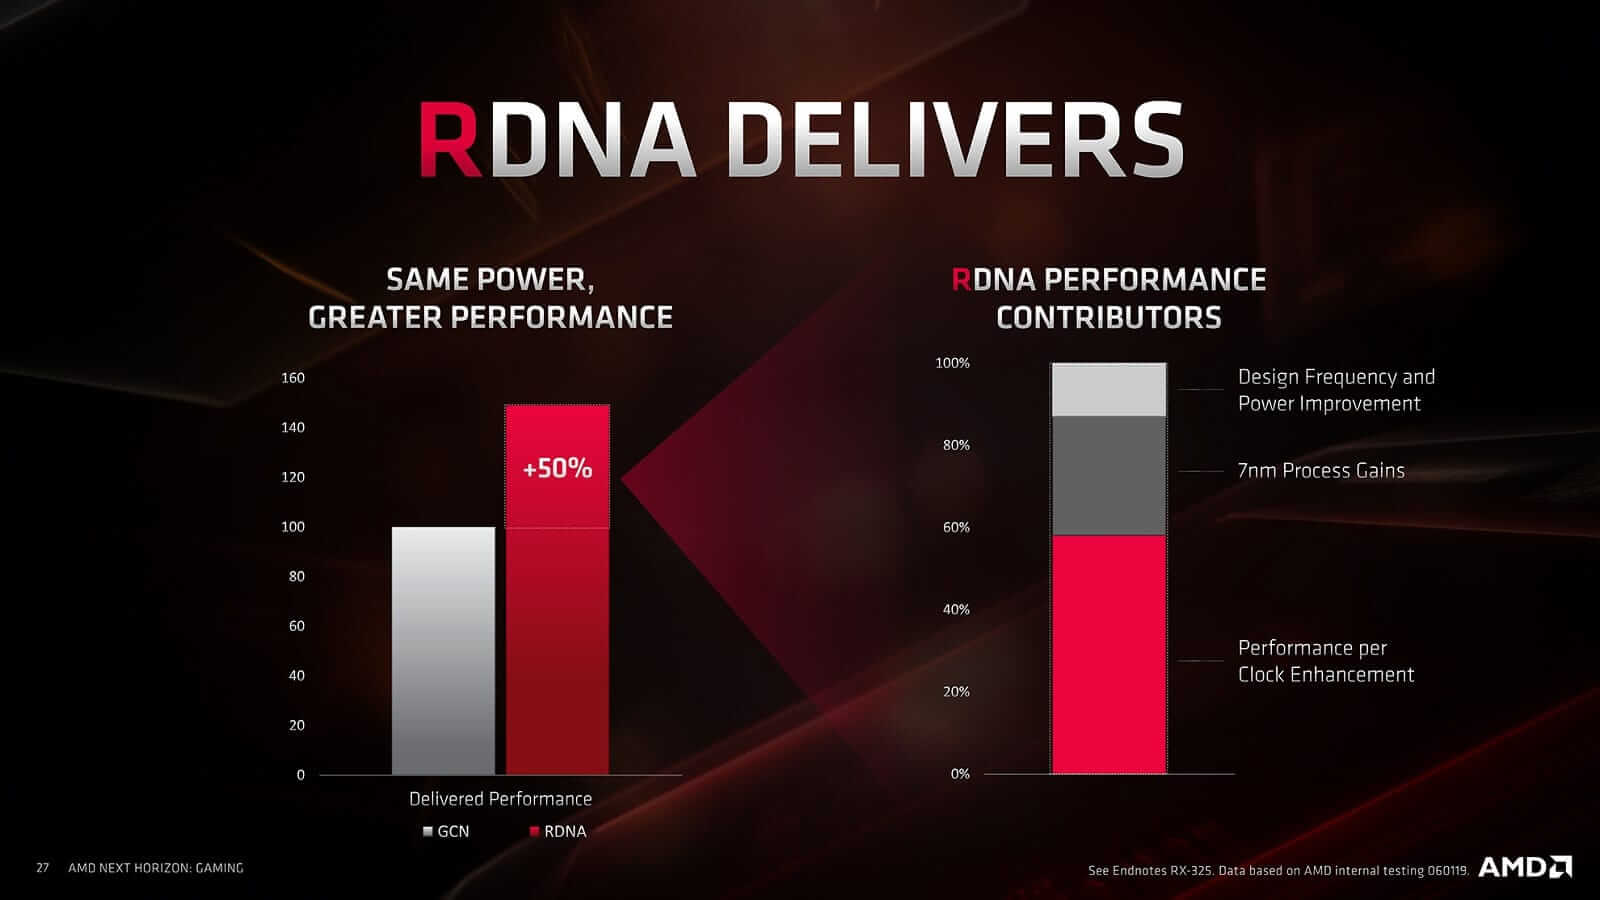 GCN vs RDNA Performance